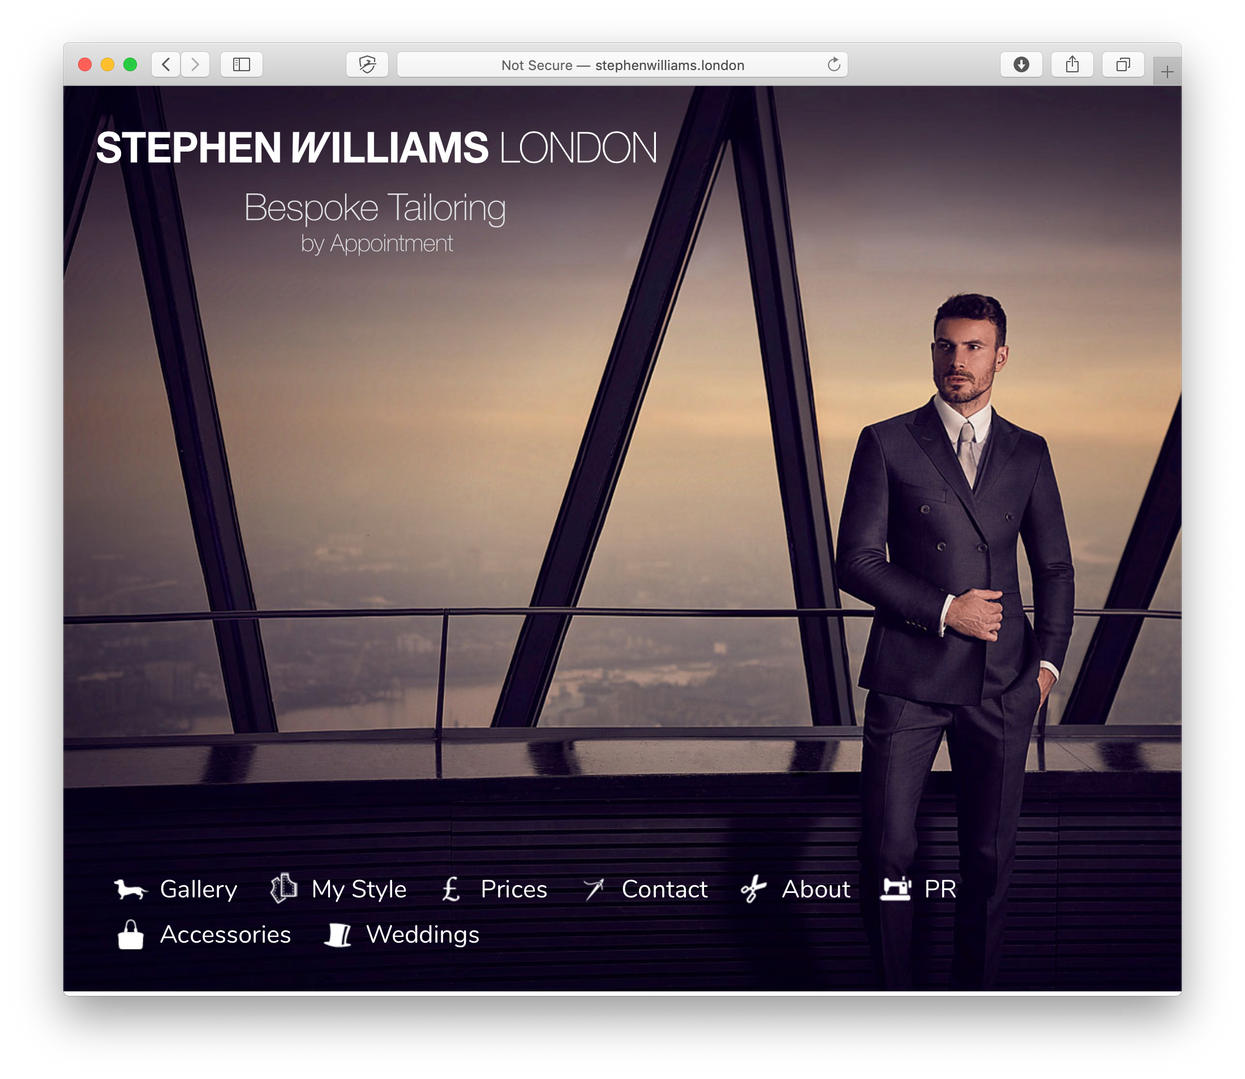 Client - Stephen Williams London